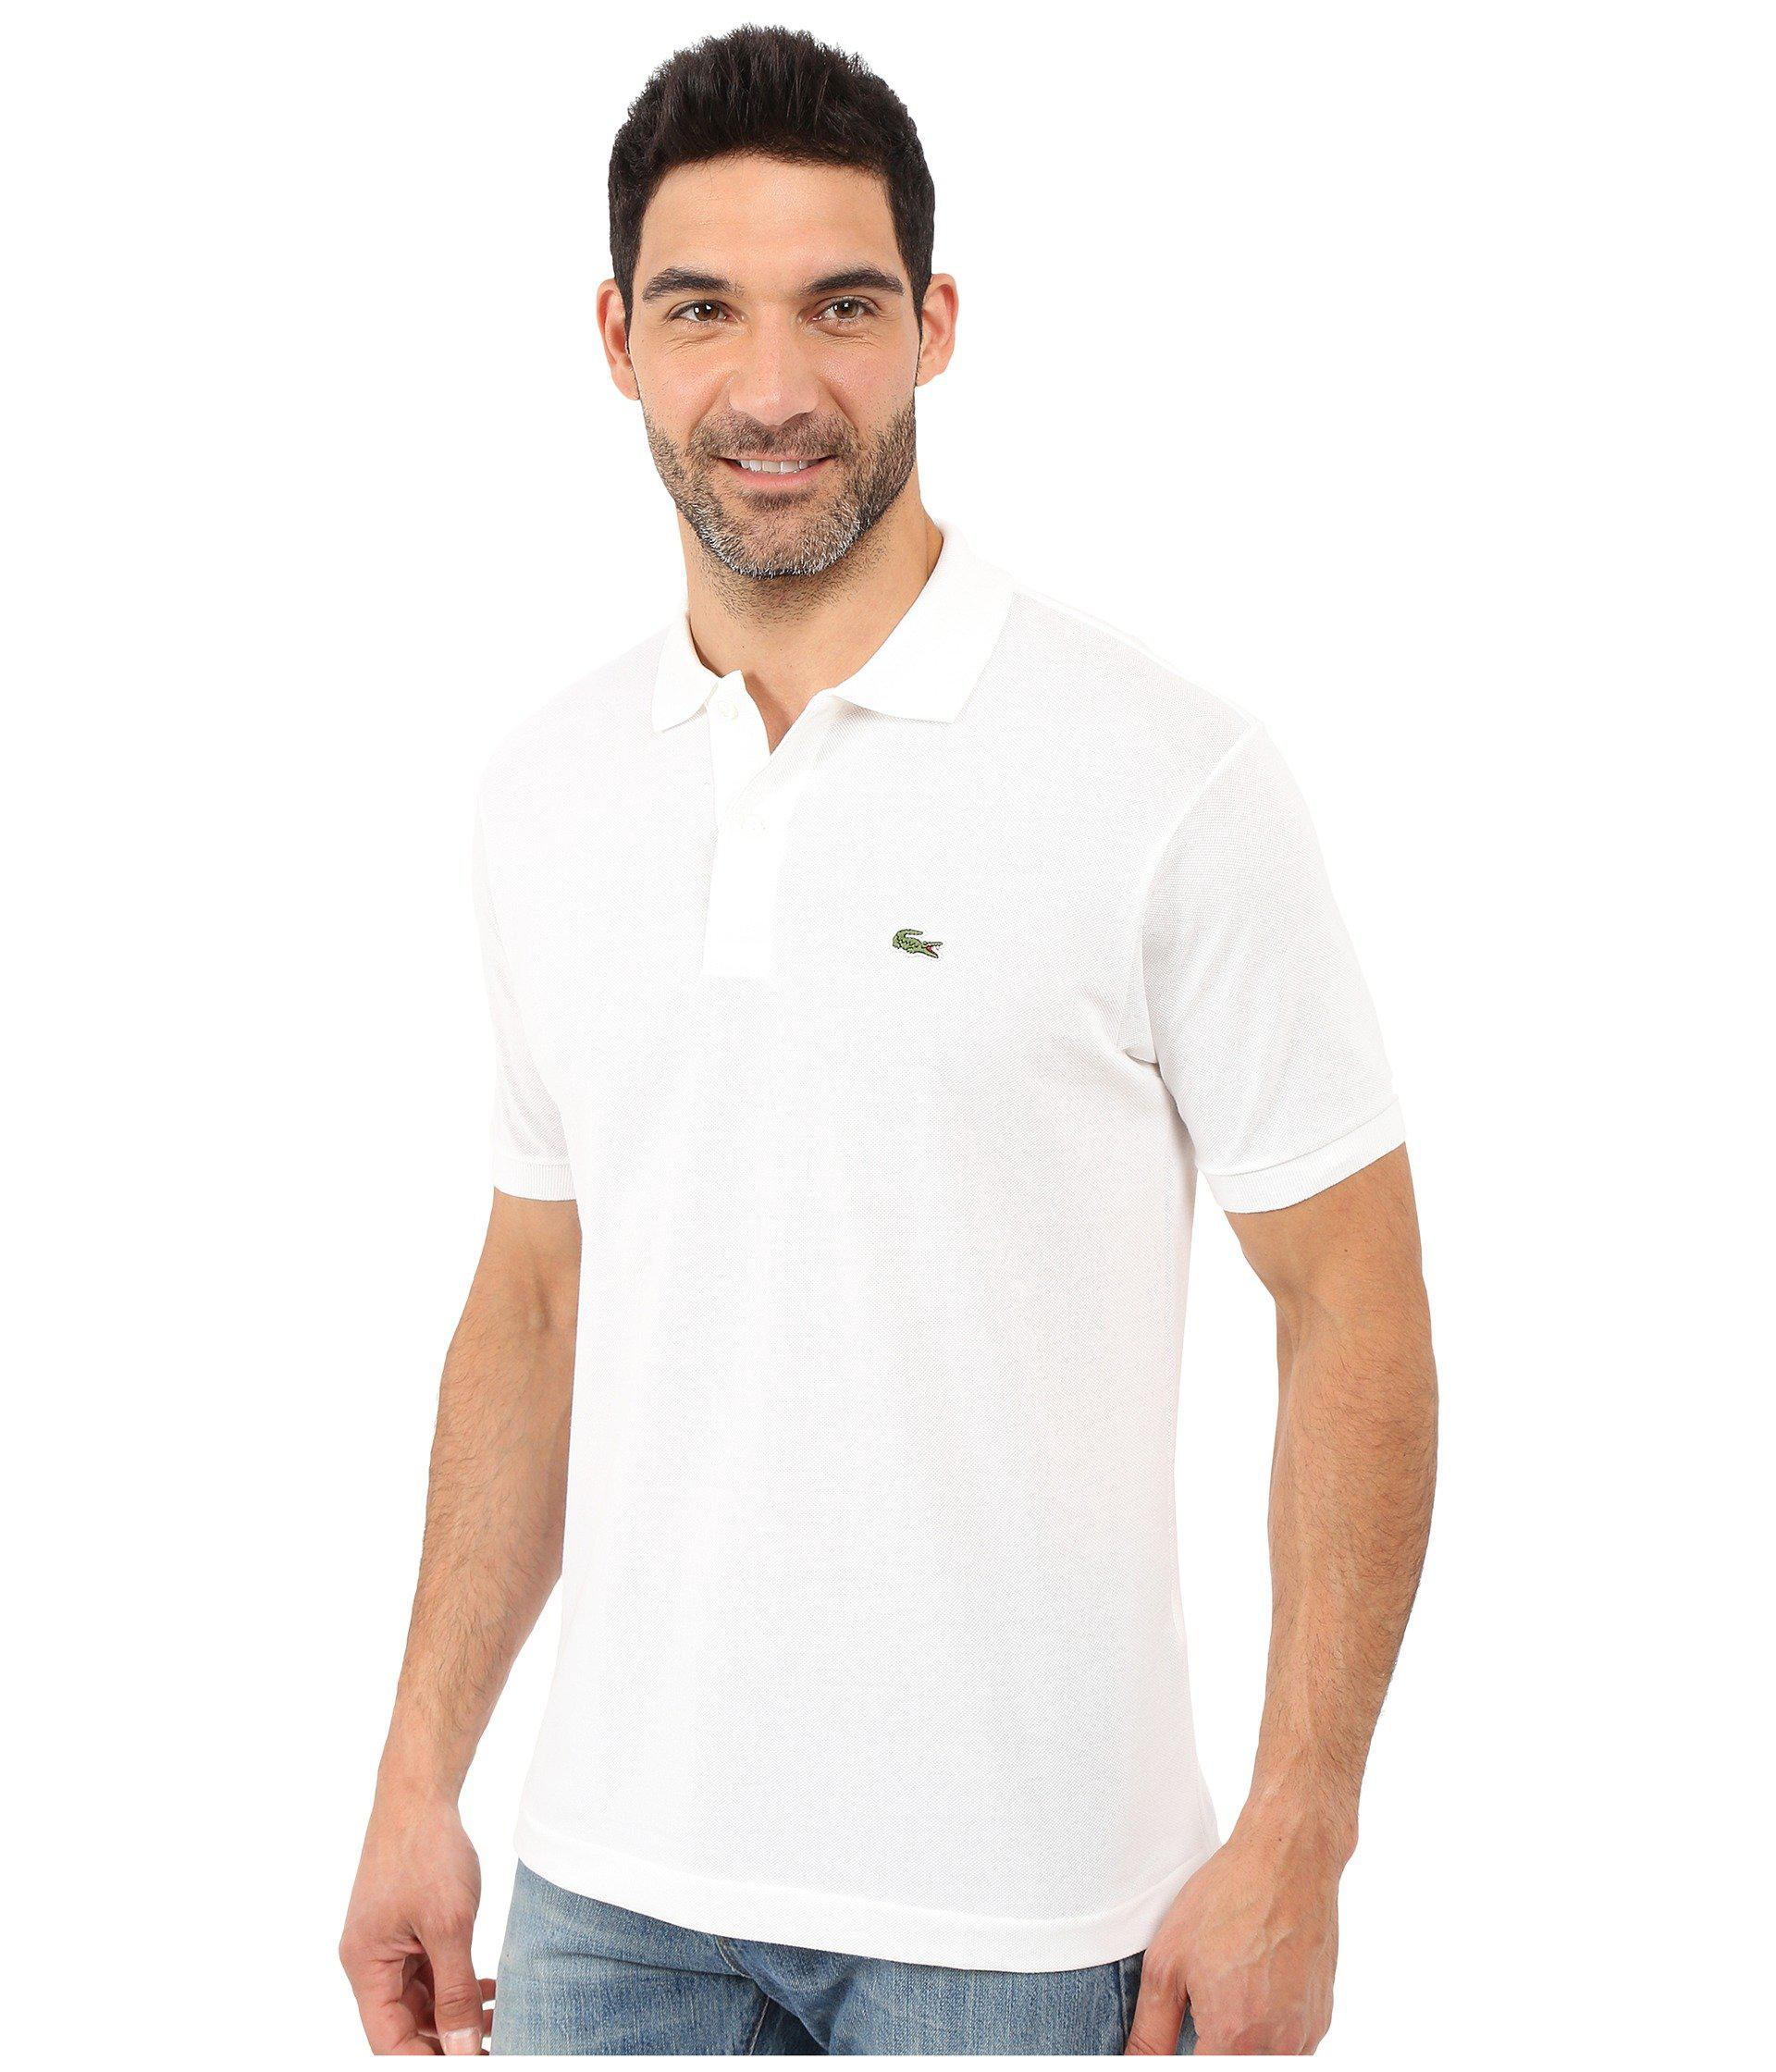 Lyst - Lacoste L1212 Classic Pique Polo Shirt (black) Men s Short Sleeve  Knit in White for Men 9458df1ed74